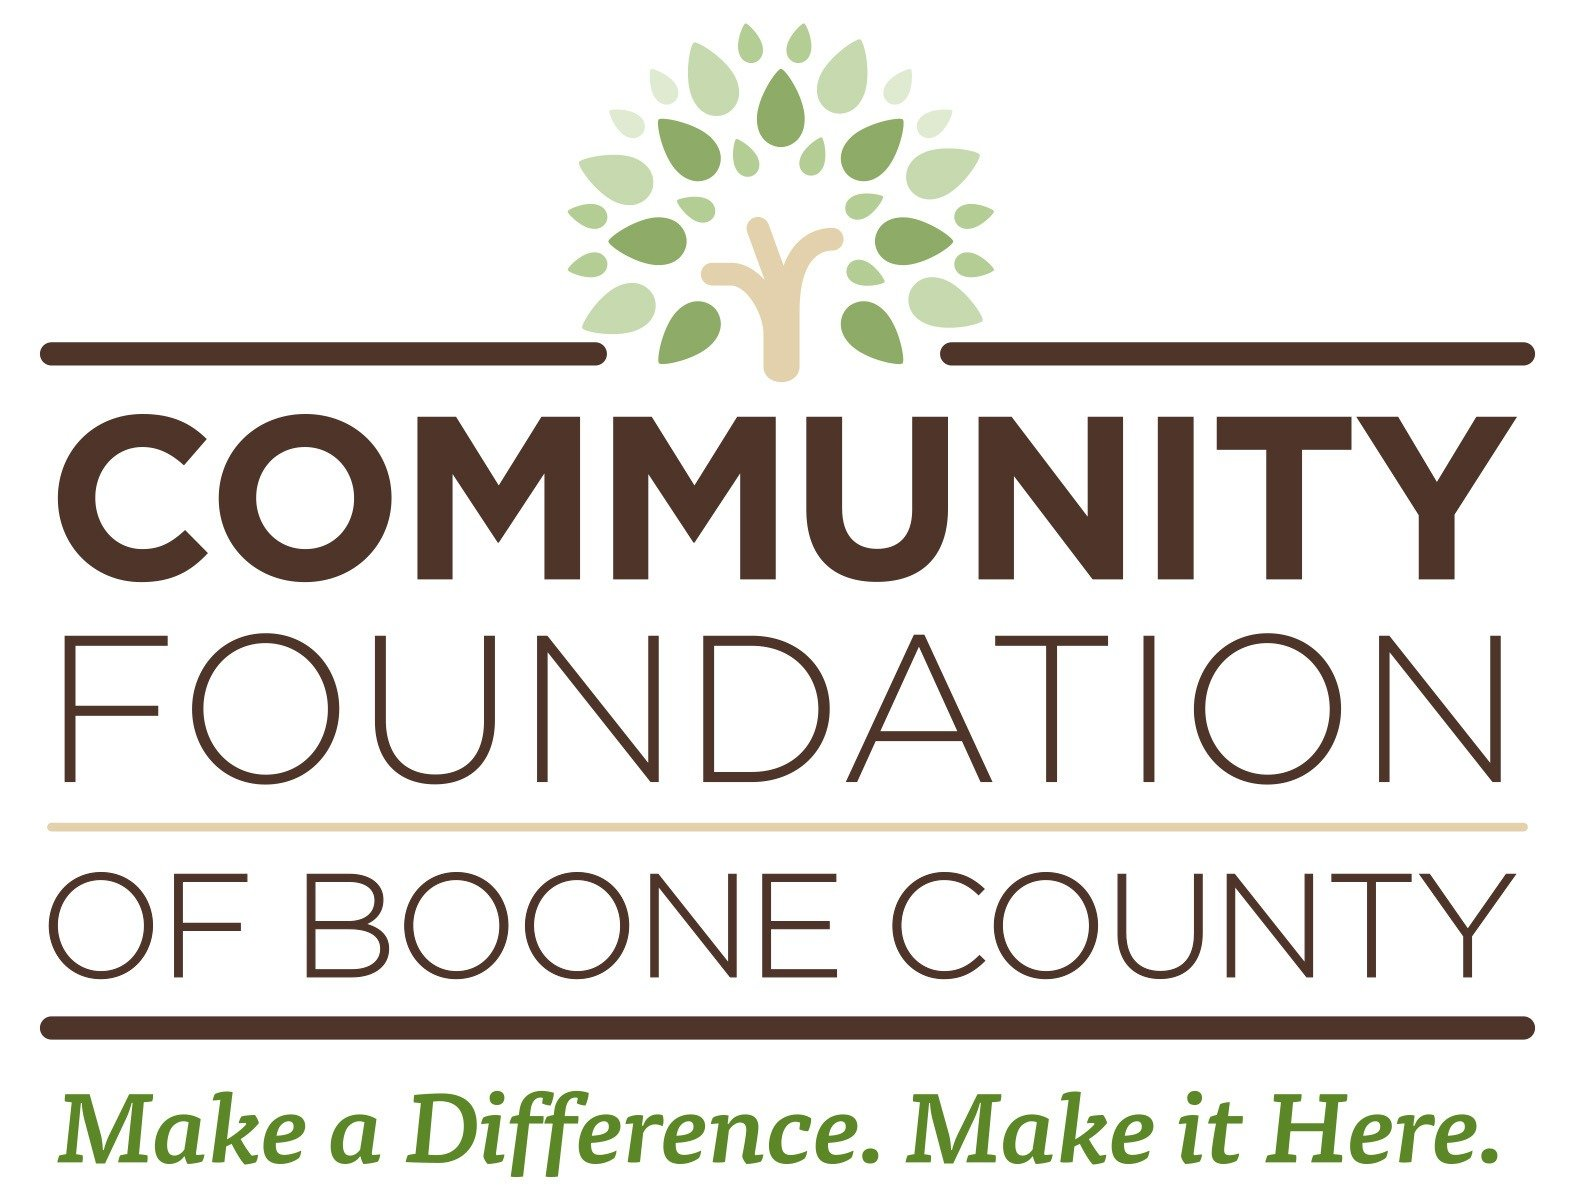 The Community Foundation of Boone